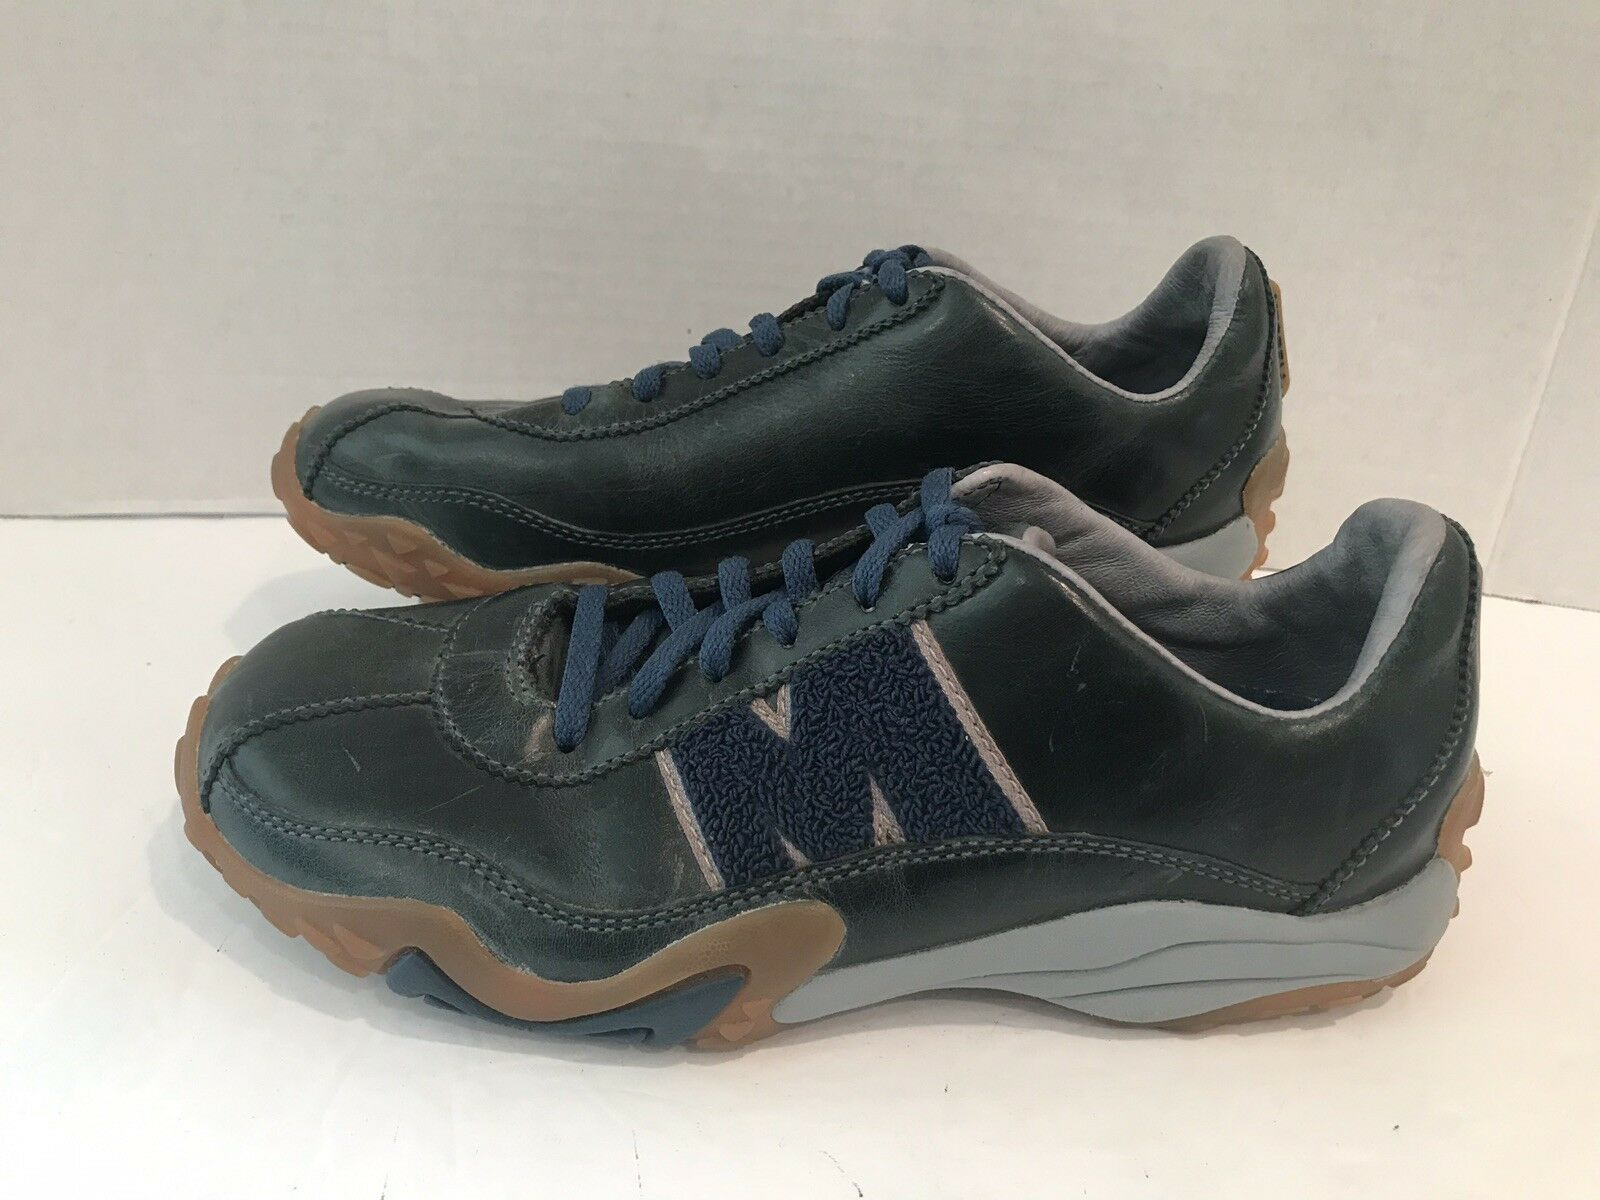 MERRELL WOMEN'S ATHLETIC FASHION SNEAKERS SIZE 7 blueE SAMPLE